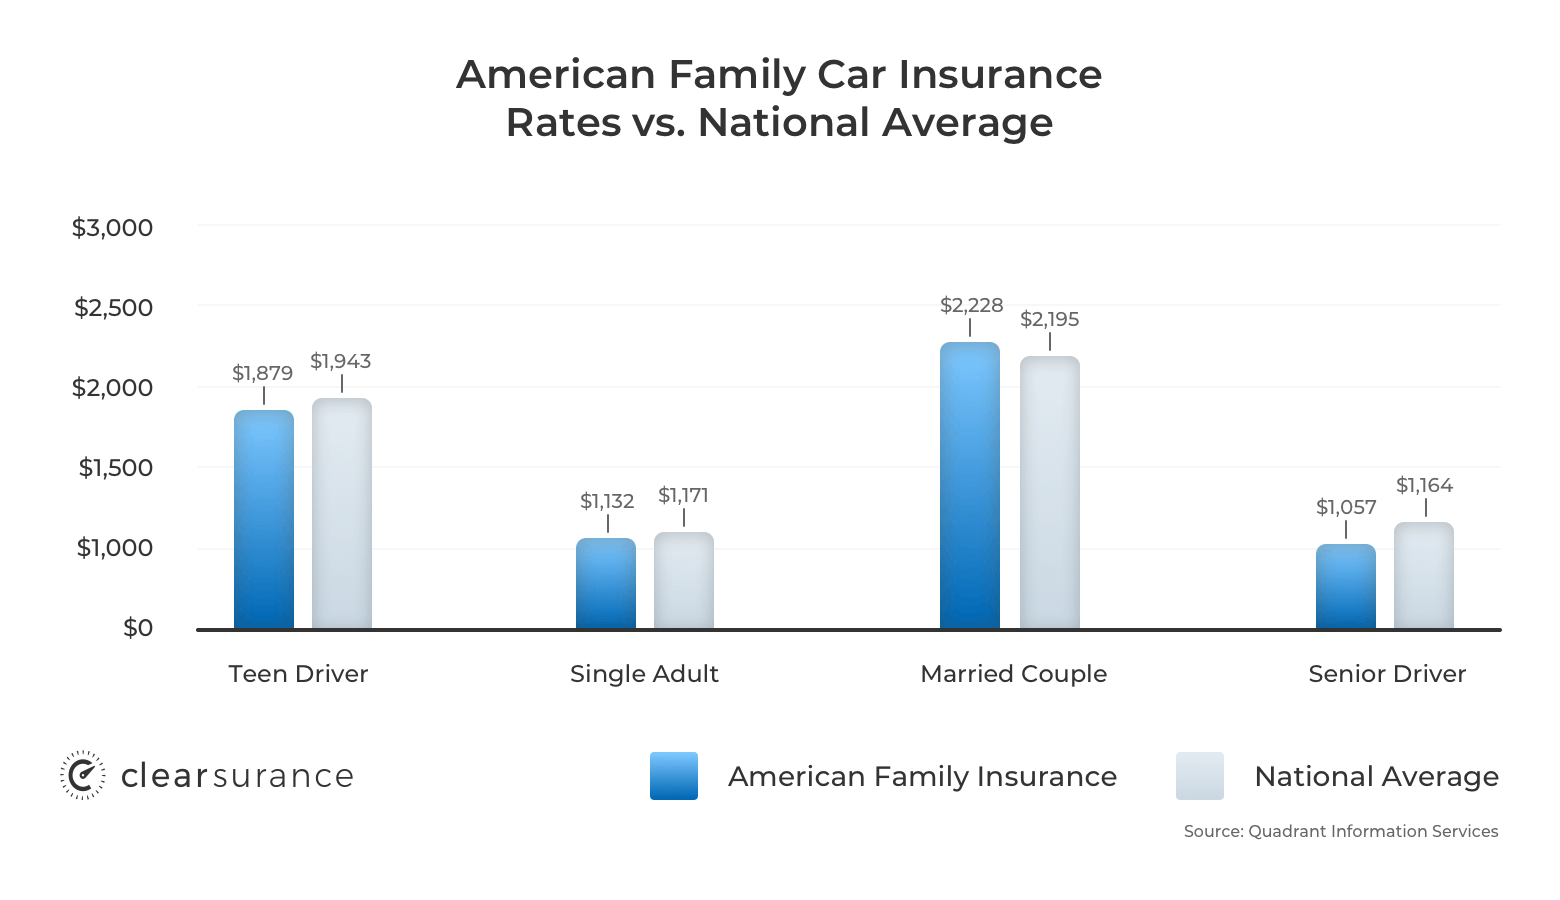 American Family car insurance rates